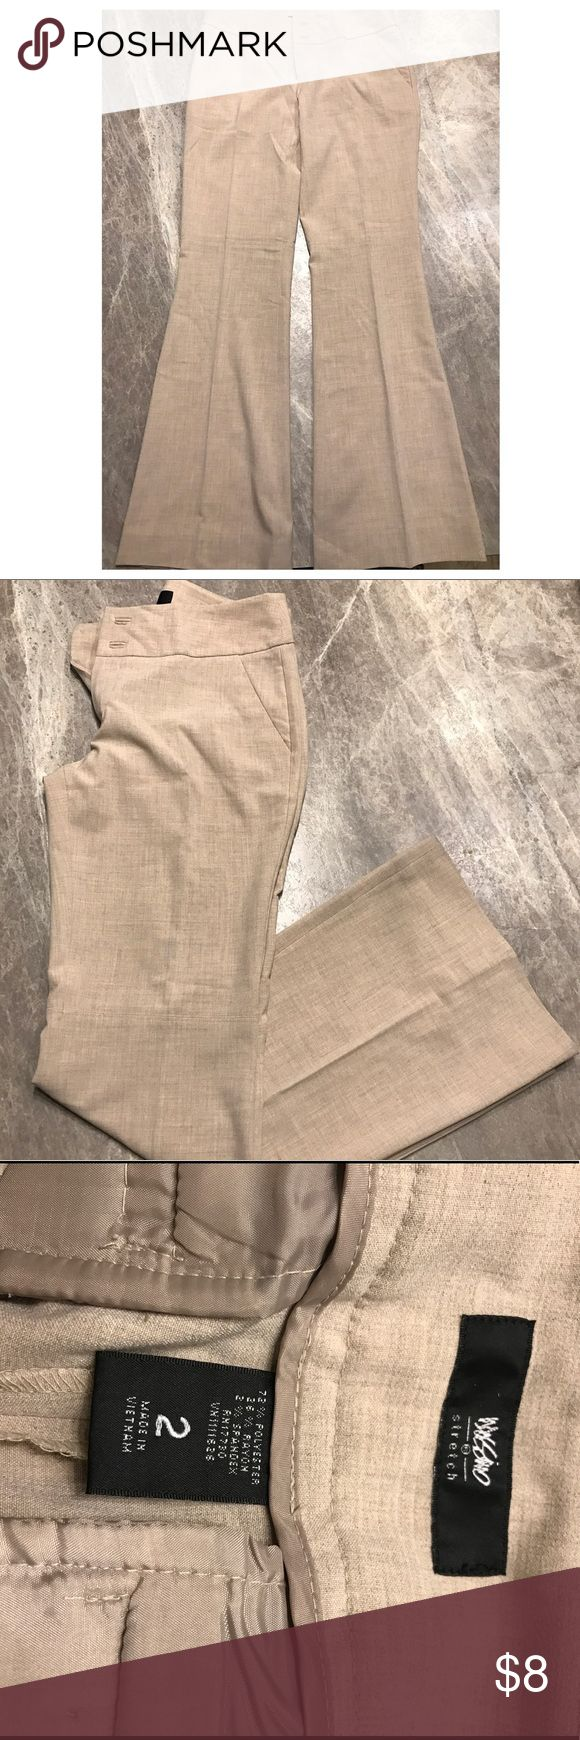 Mossimo stretch, dress pants Mossimo dress pants size 2. NWOT. Slight flare. Light tan color. Mossimo Supply Co Pants Boot Cut & Flare